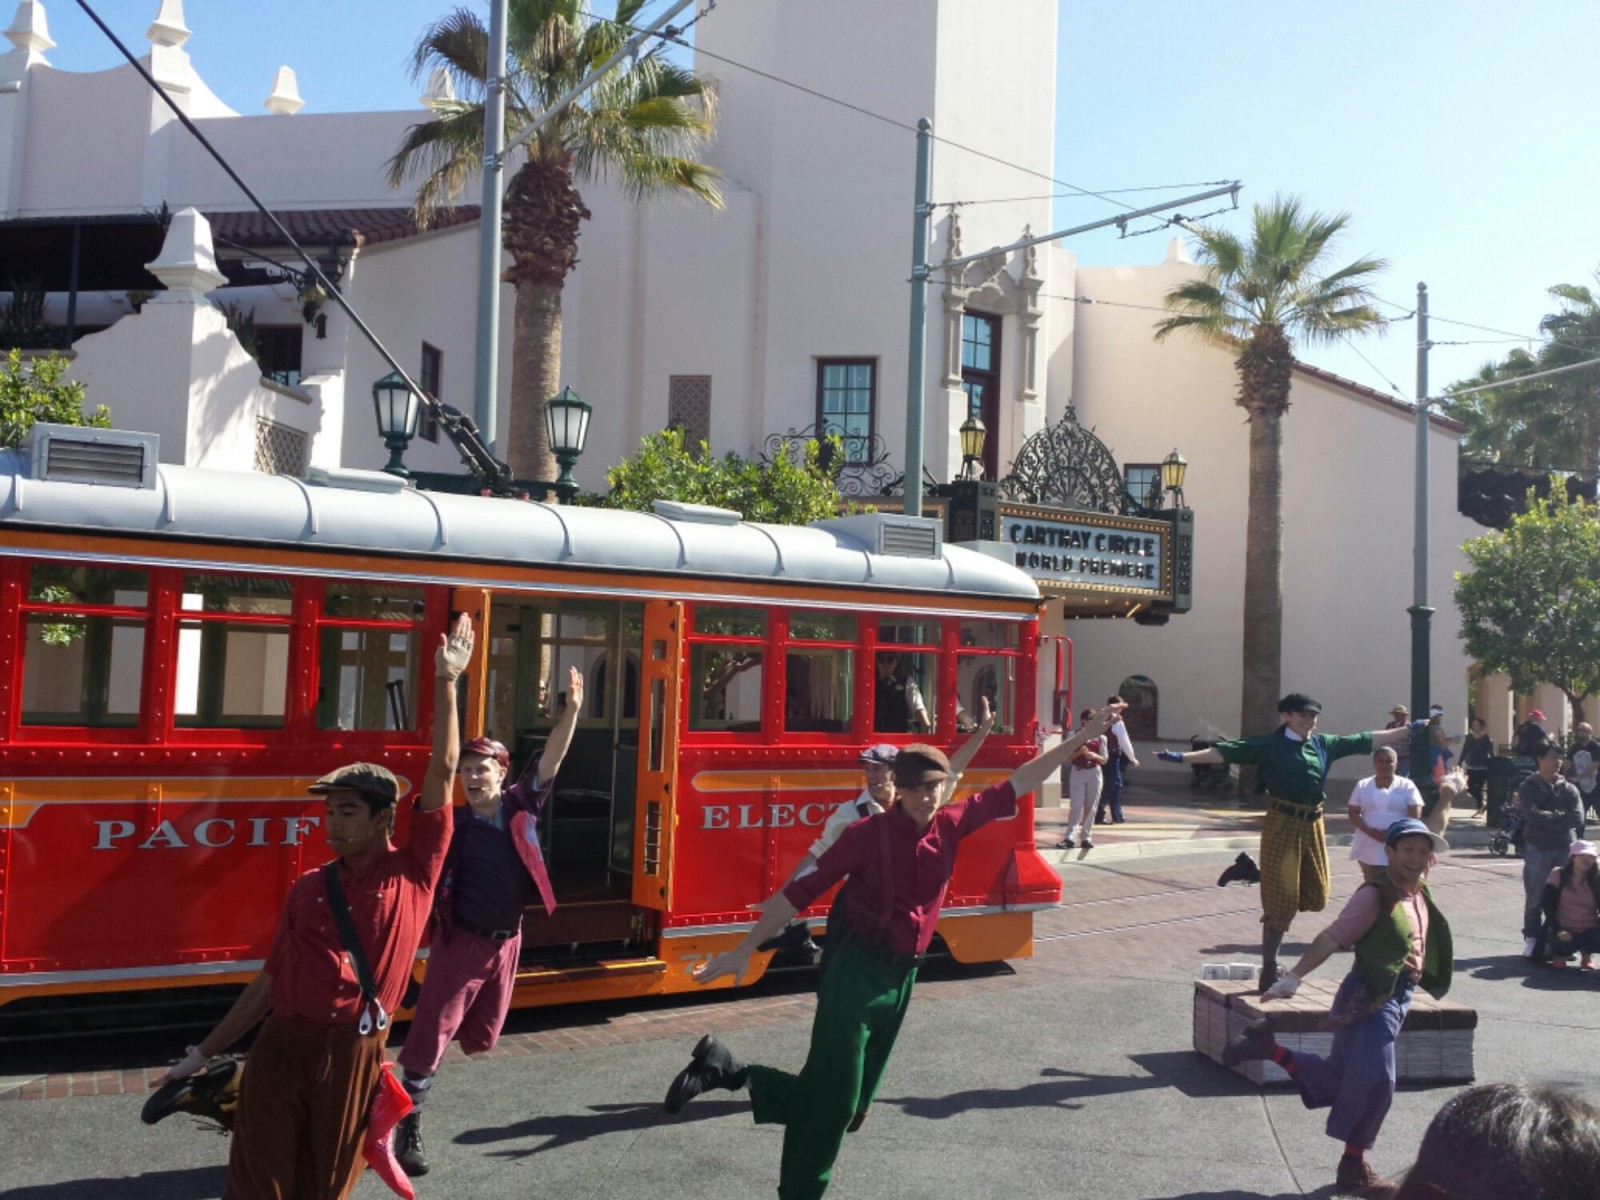 The Red Car News Boys performing in Carthay Circle #BuenaVistaStreet